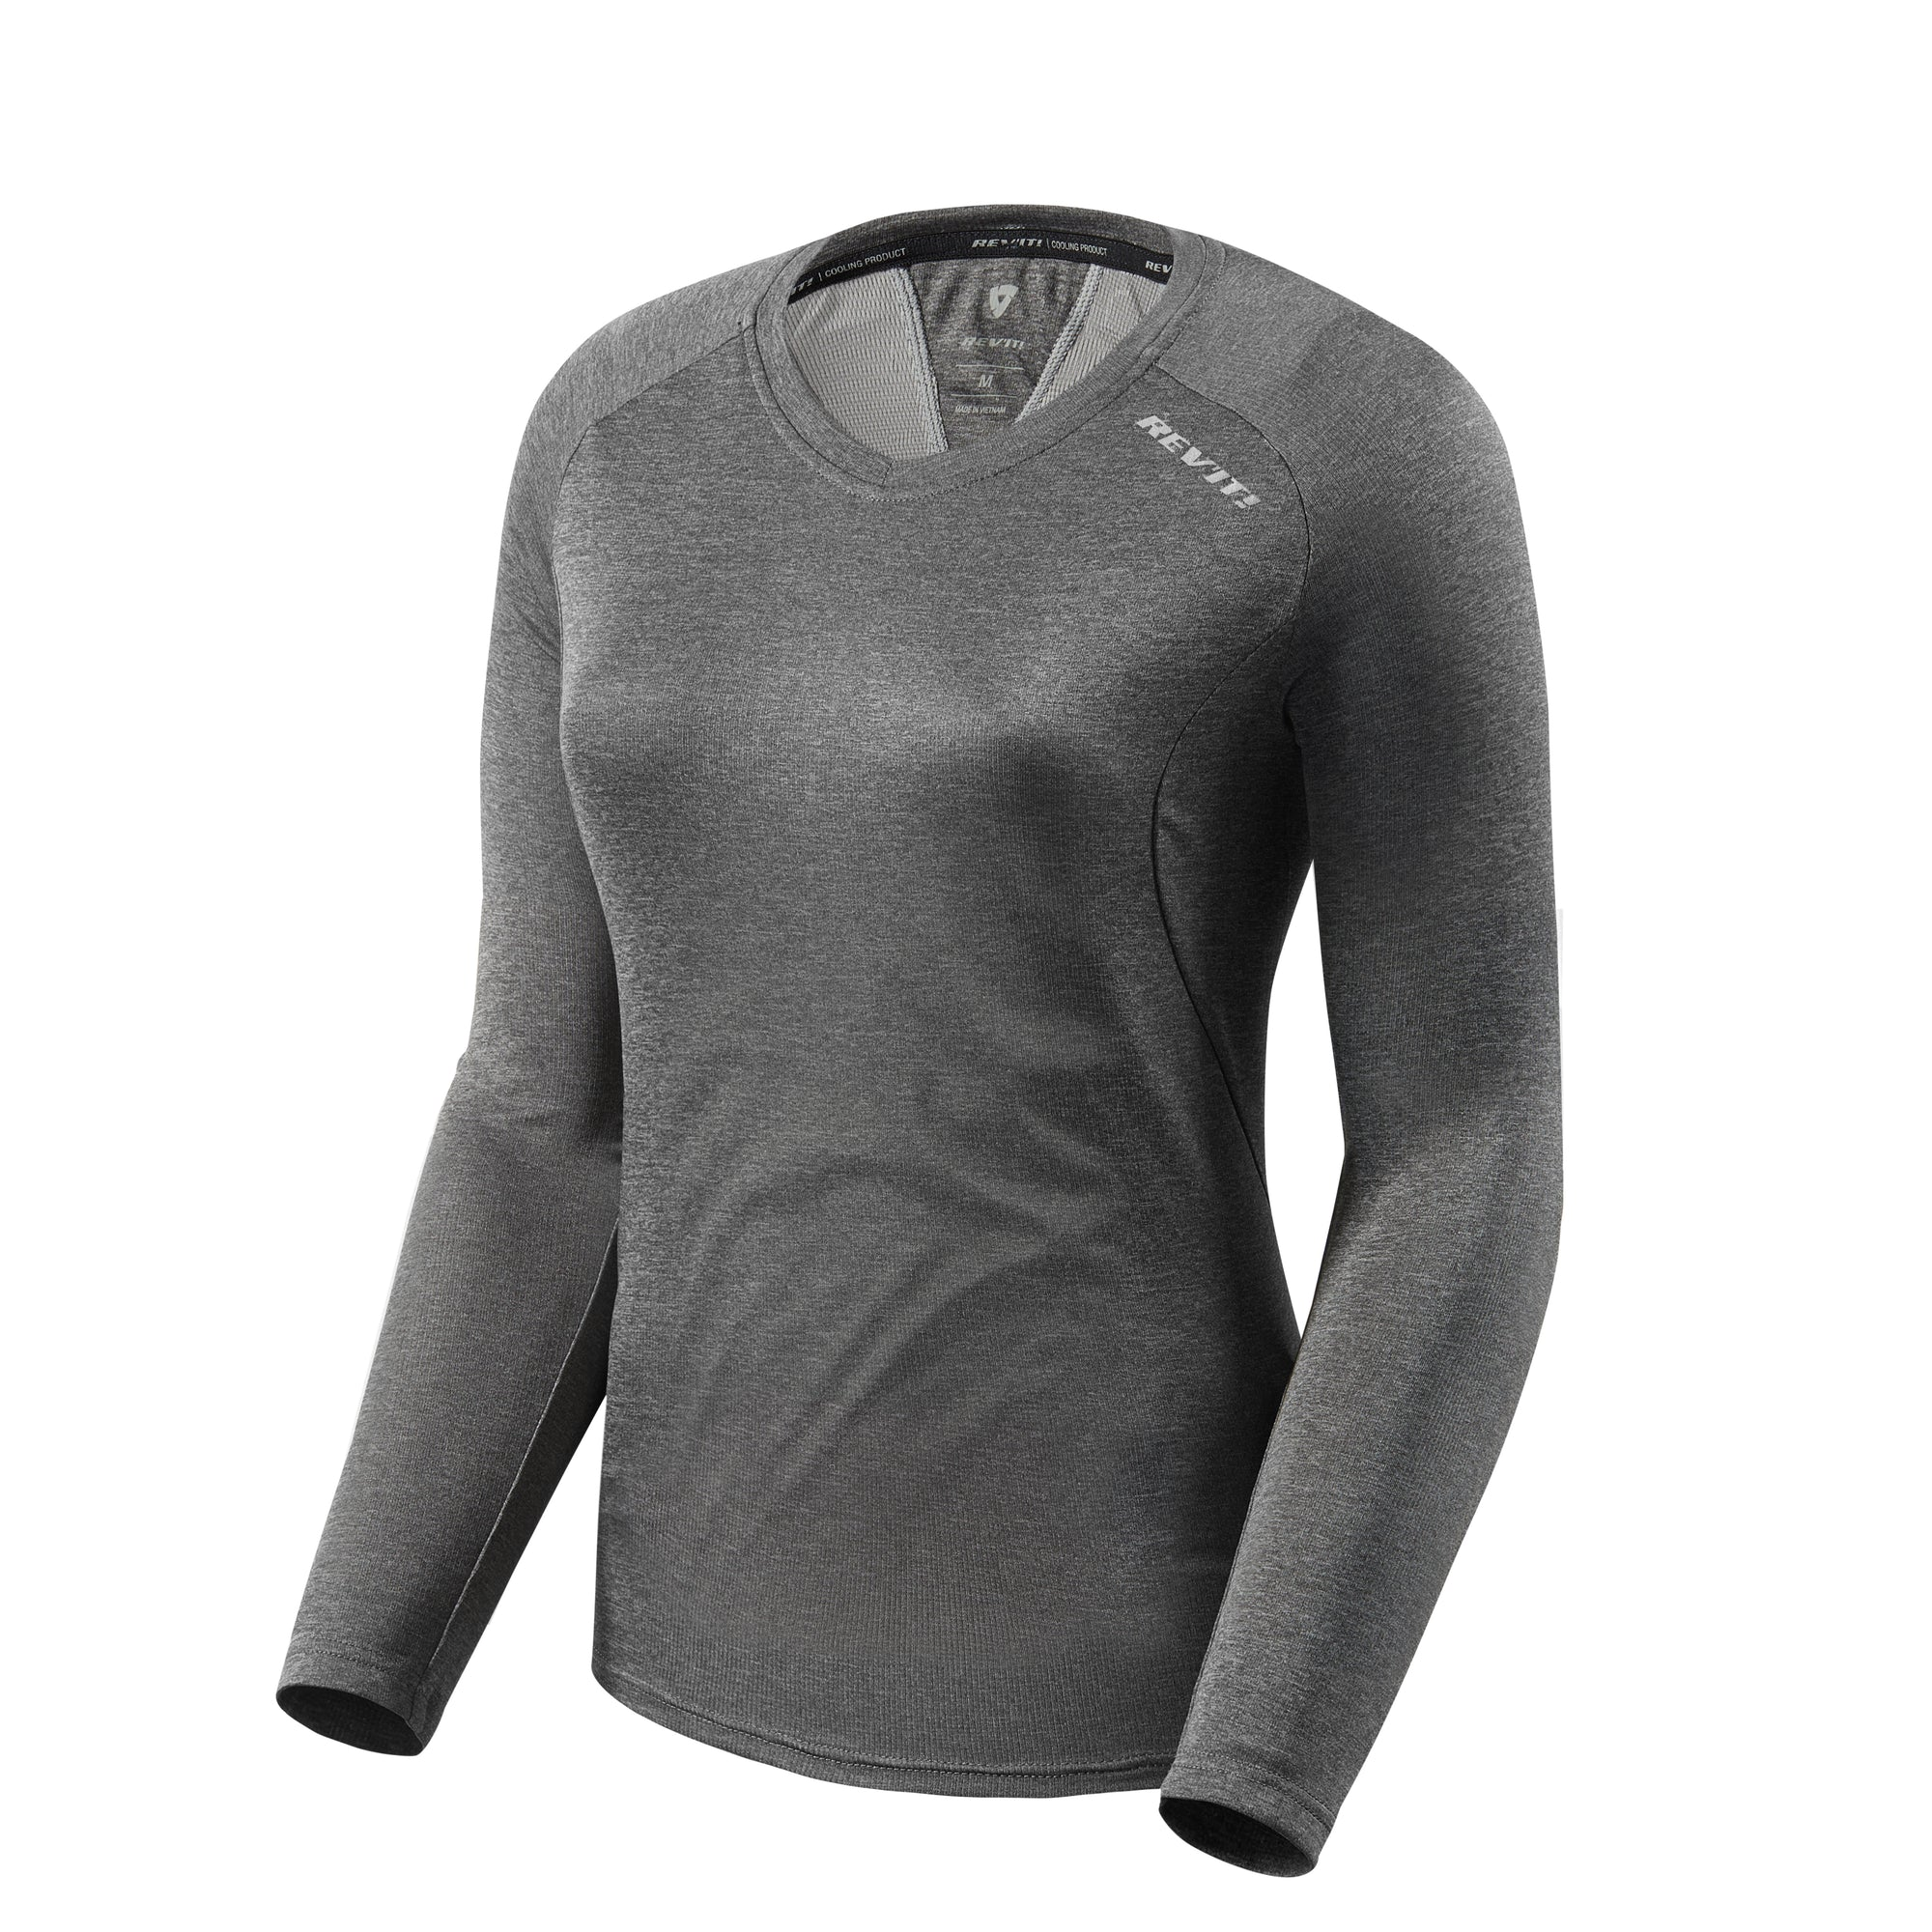 REV'IT Sky LS Ladies Base Layer Shirt - 421 Moto Gear